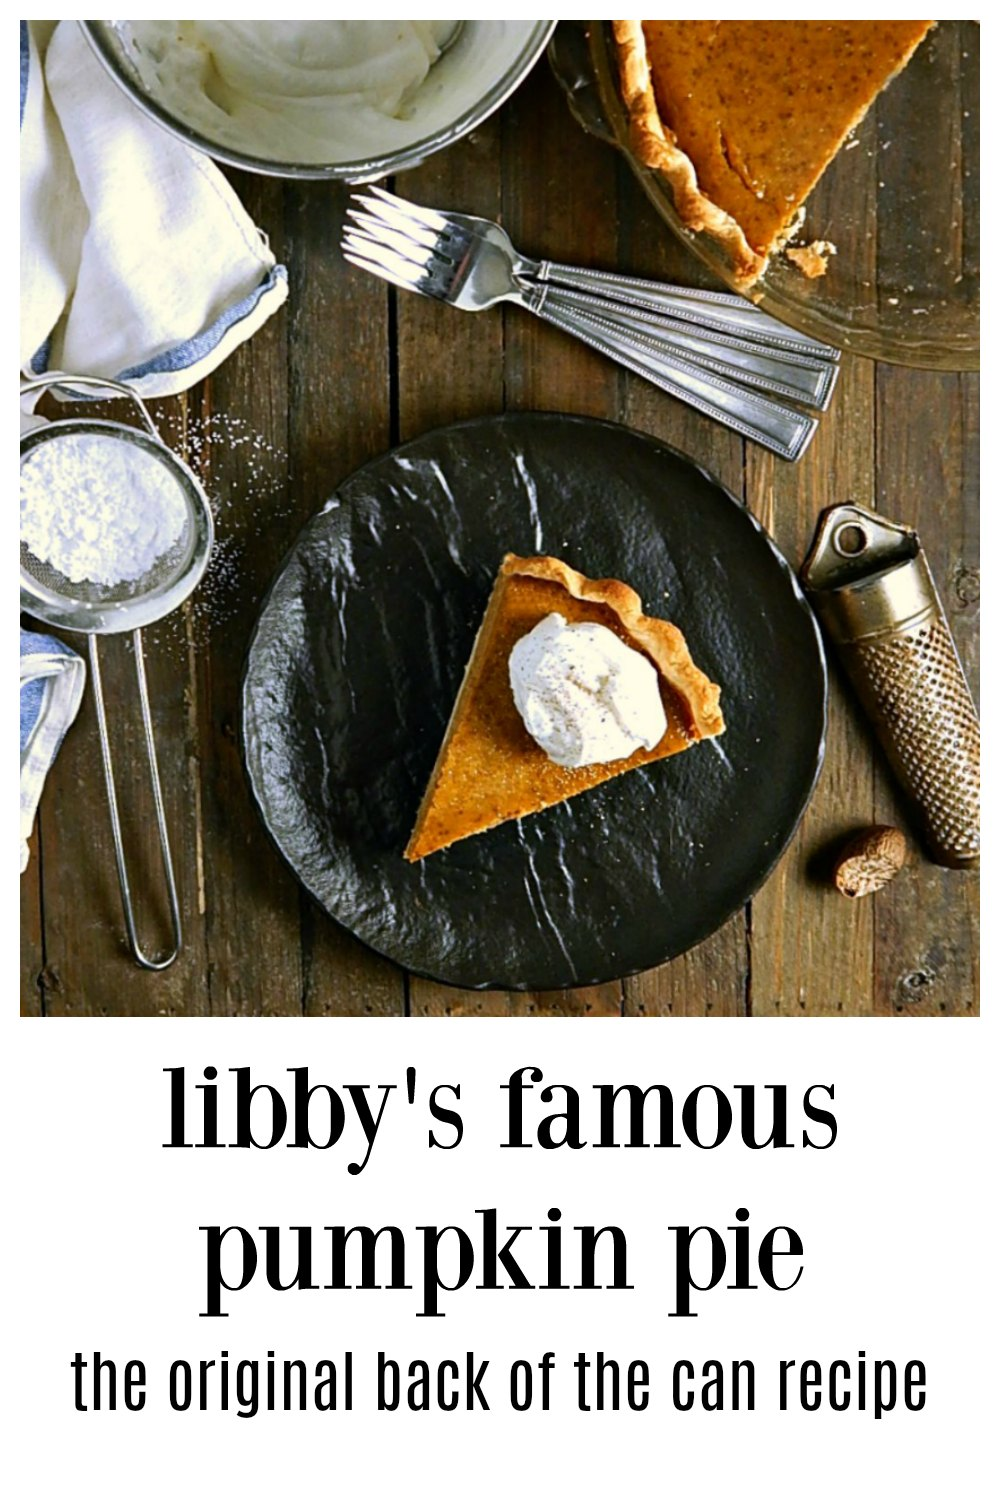 "Libby's Famous Pumpkin Pie is it, the one so many of us grew up, the old Back of the Can Recipe and it's still a classic! Super fast to make, super easy and oh so familiar. It tastes like ""home."" #LibbysPumpkinPie #LibbysOriginalPumpkinPie #LibbysPumpkinPieBackOfTheCan #LibbysClassicPumpkinPie #LibbysFamousPumpkinPie"